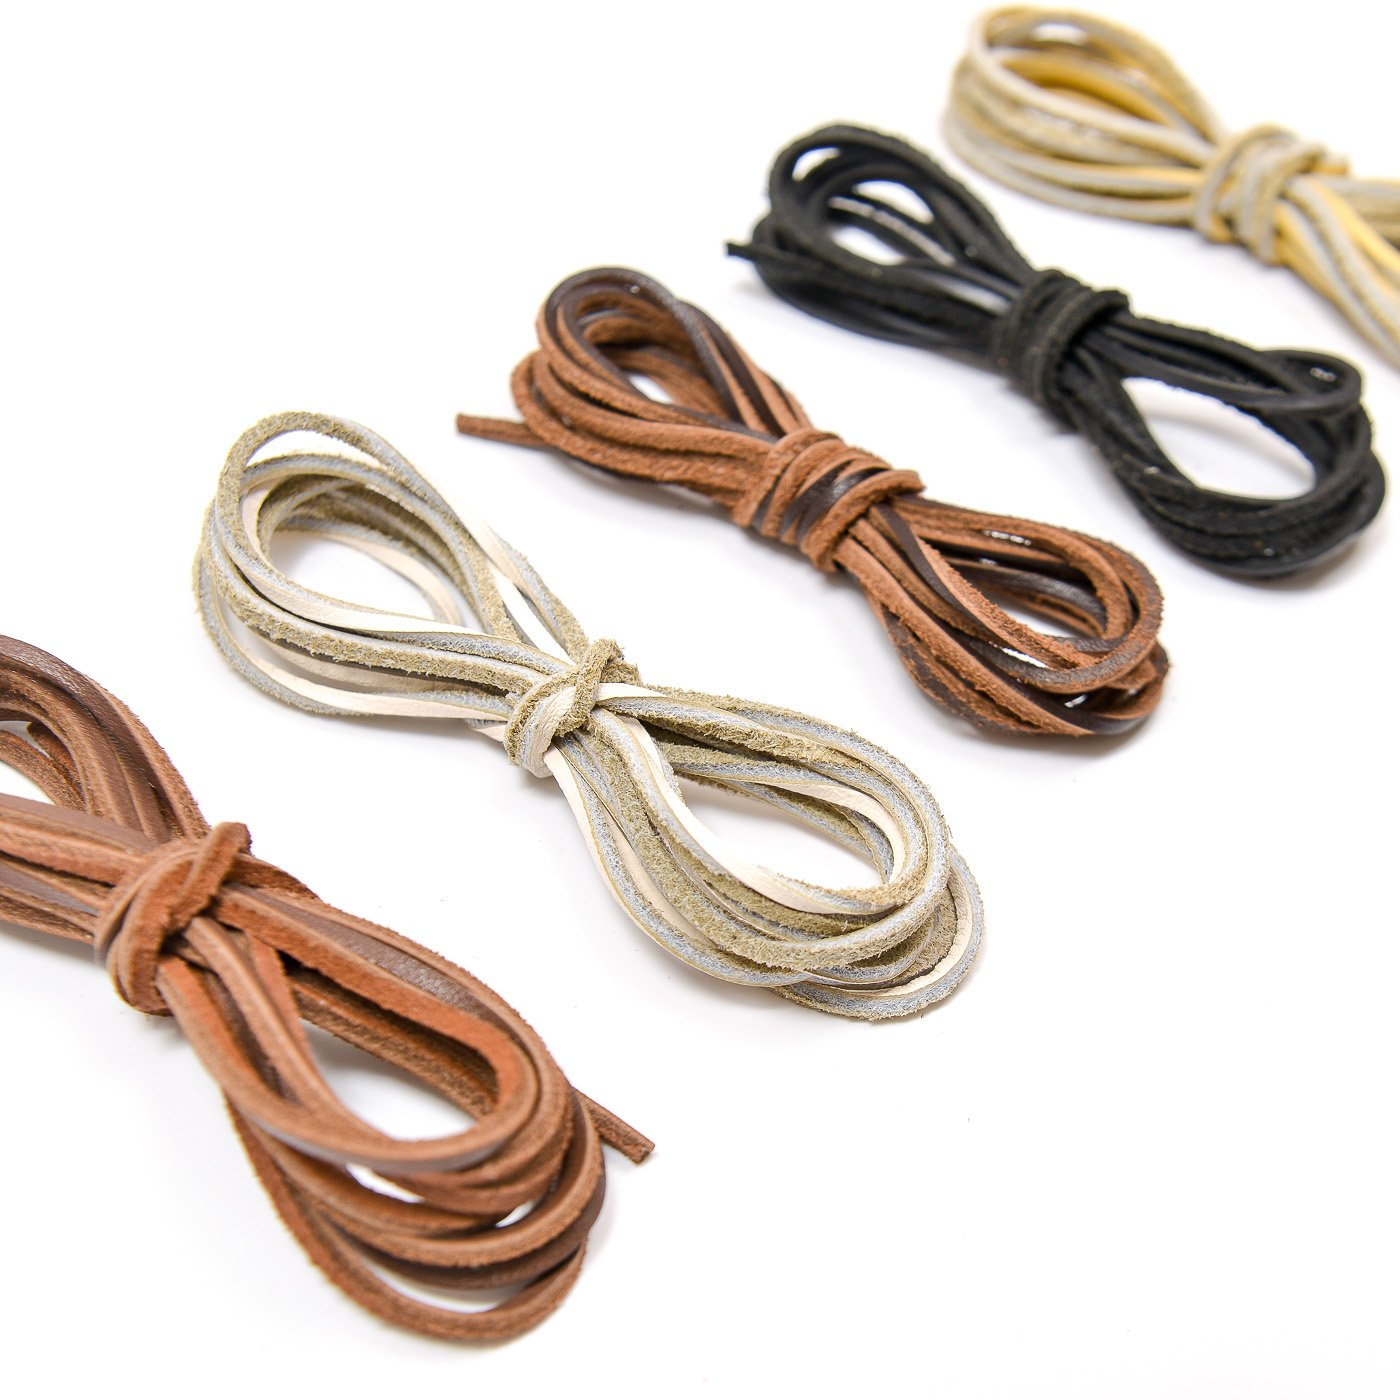 Vancool 2mm x 2m Leather Cord Suede String for Bracelet Necklace Beading Jewelry DIY Handmade Crafts Making, 5 Pieces, 5 Colors 4336861917